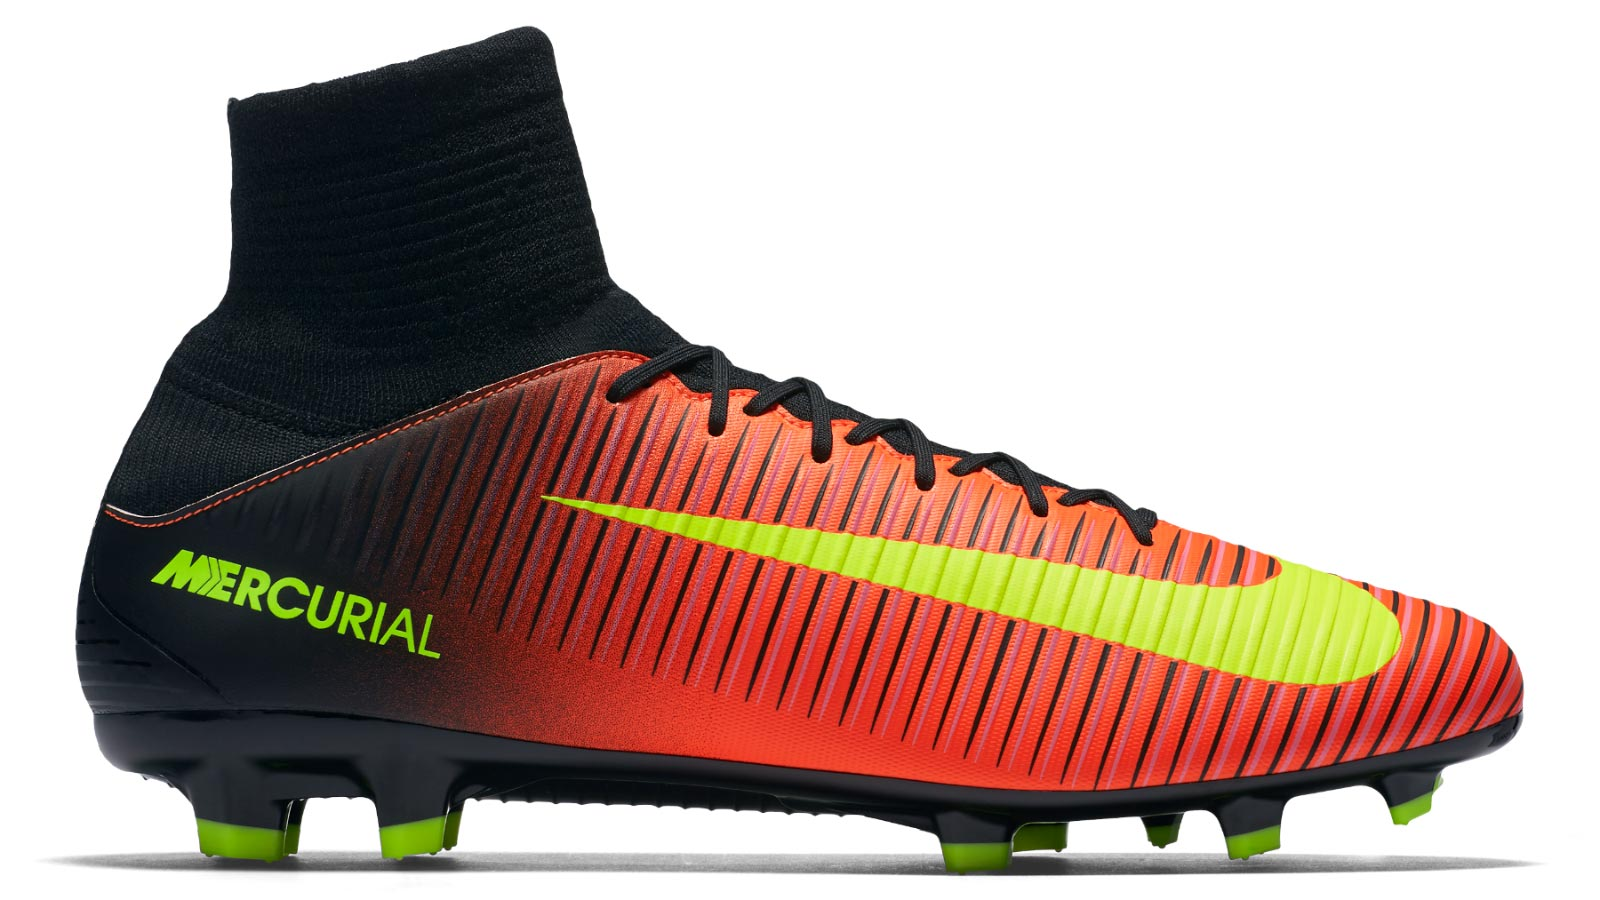 reputable site d2fa1 c965b nike mercurial vapor superfly v